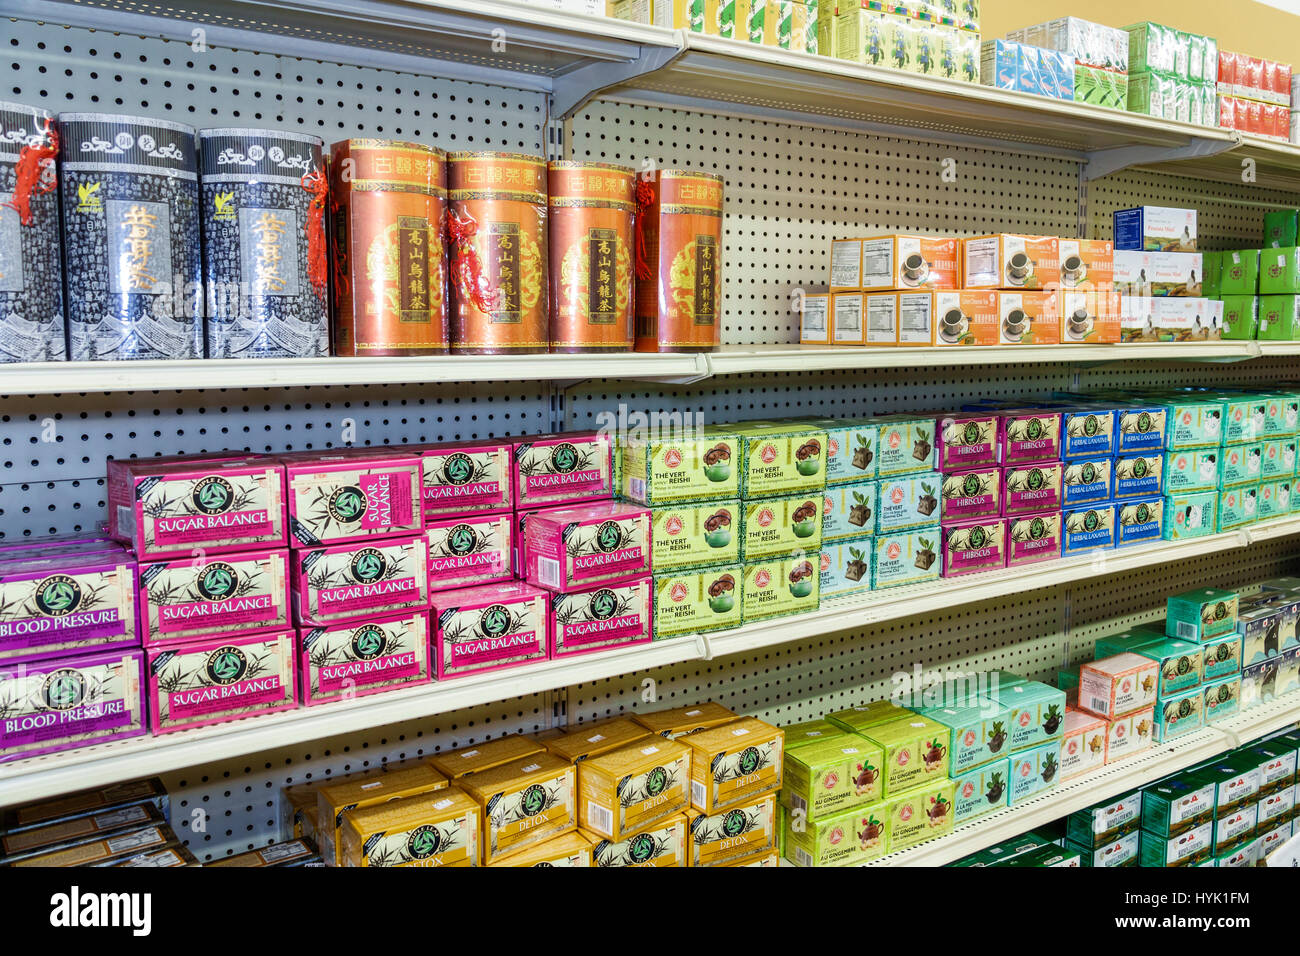 Orlando Chinatown Florida Health Food City health market Oriental alternative medicine pharmacy shelf retail display - Stock Image